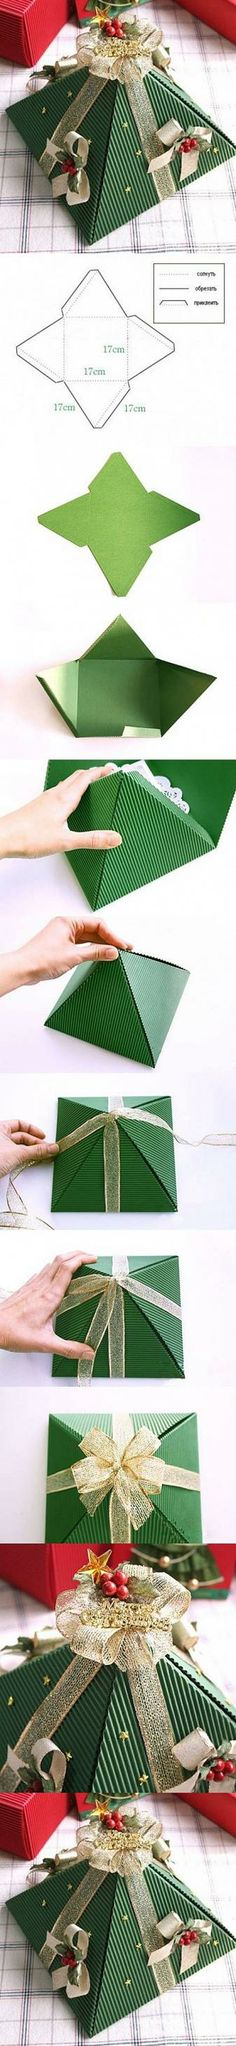 DIY Pyramid Christmas Box DIY Projects | UsefulDIY.com